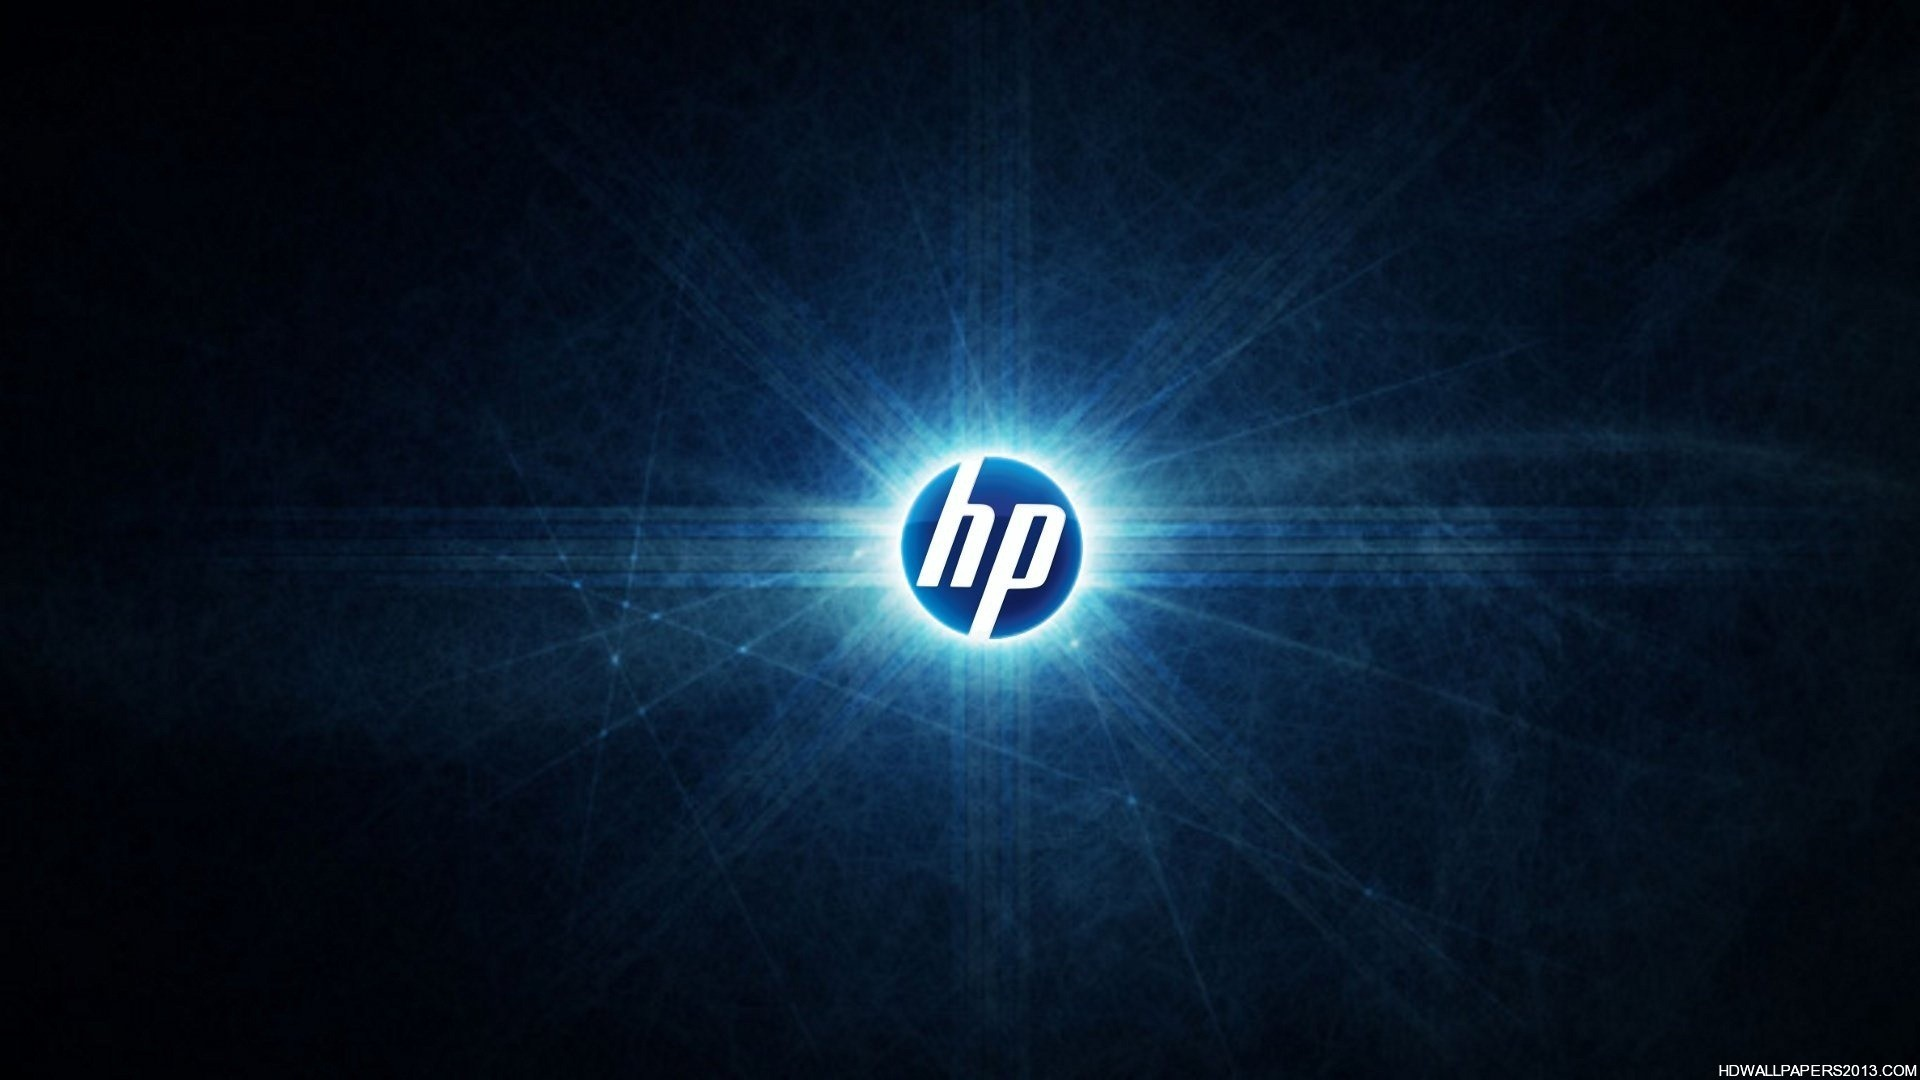 hp wallpaper hd | high definition wallpapers, high definition